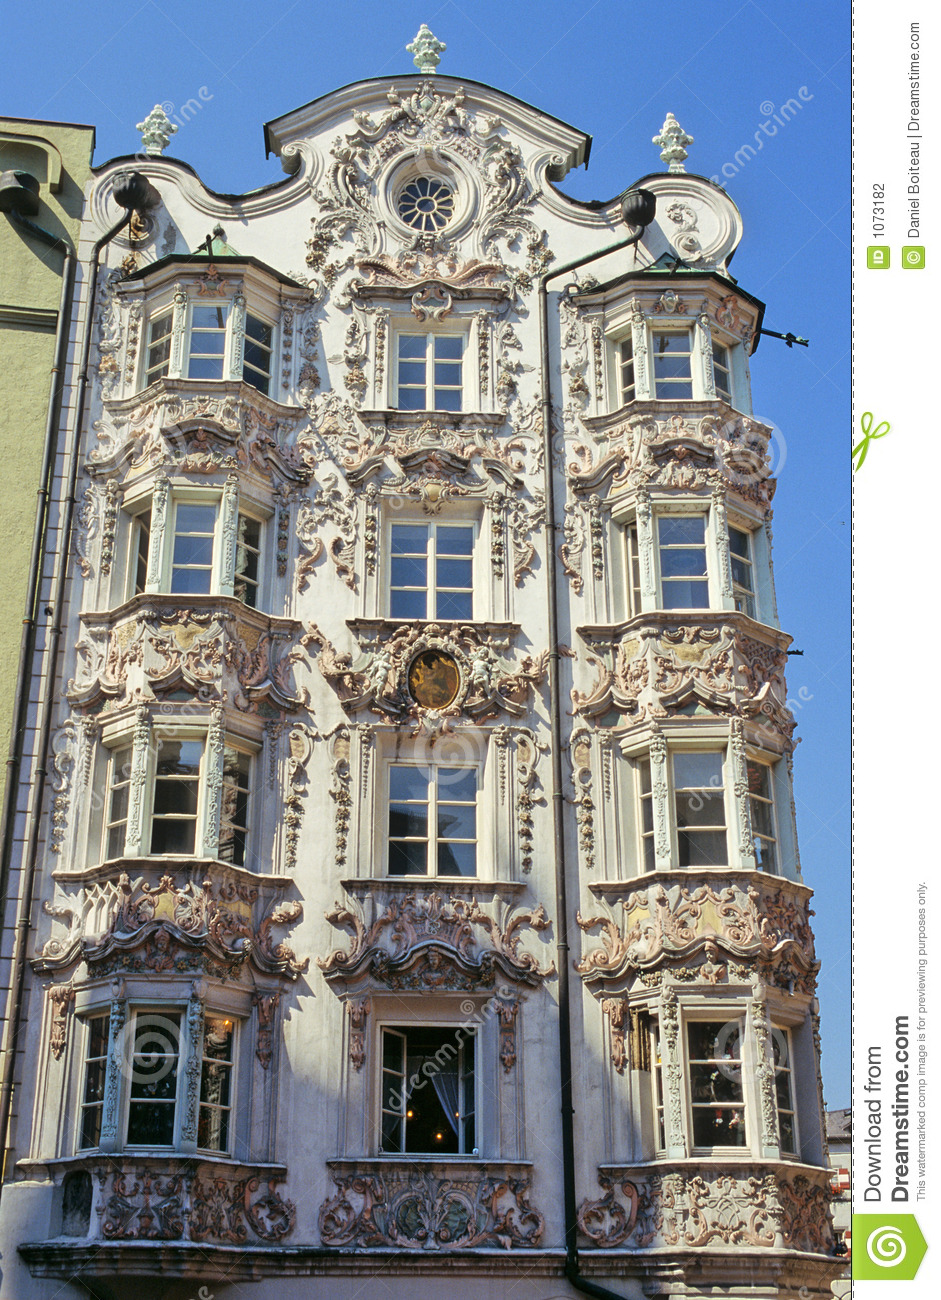 innsbruck rococo stock photography image 1073182